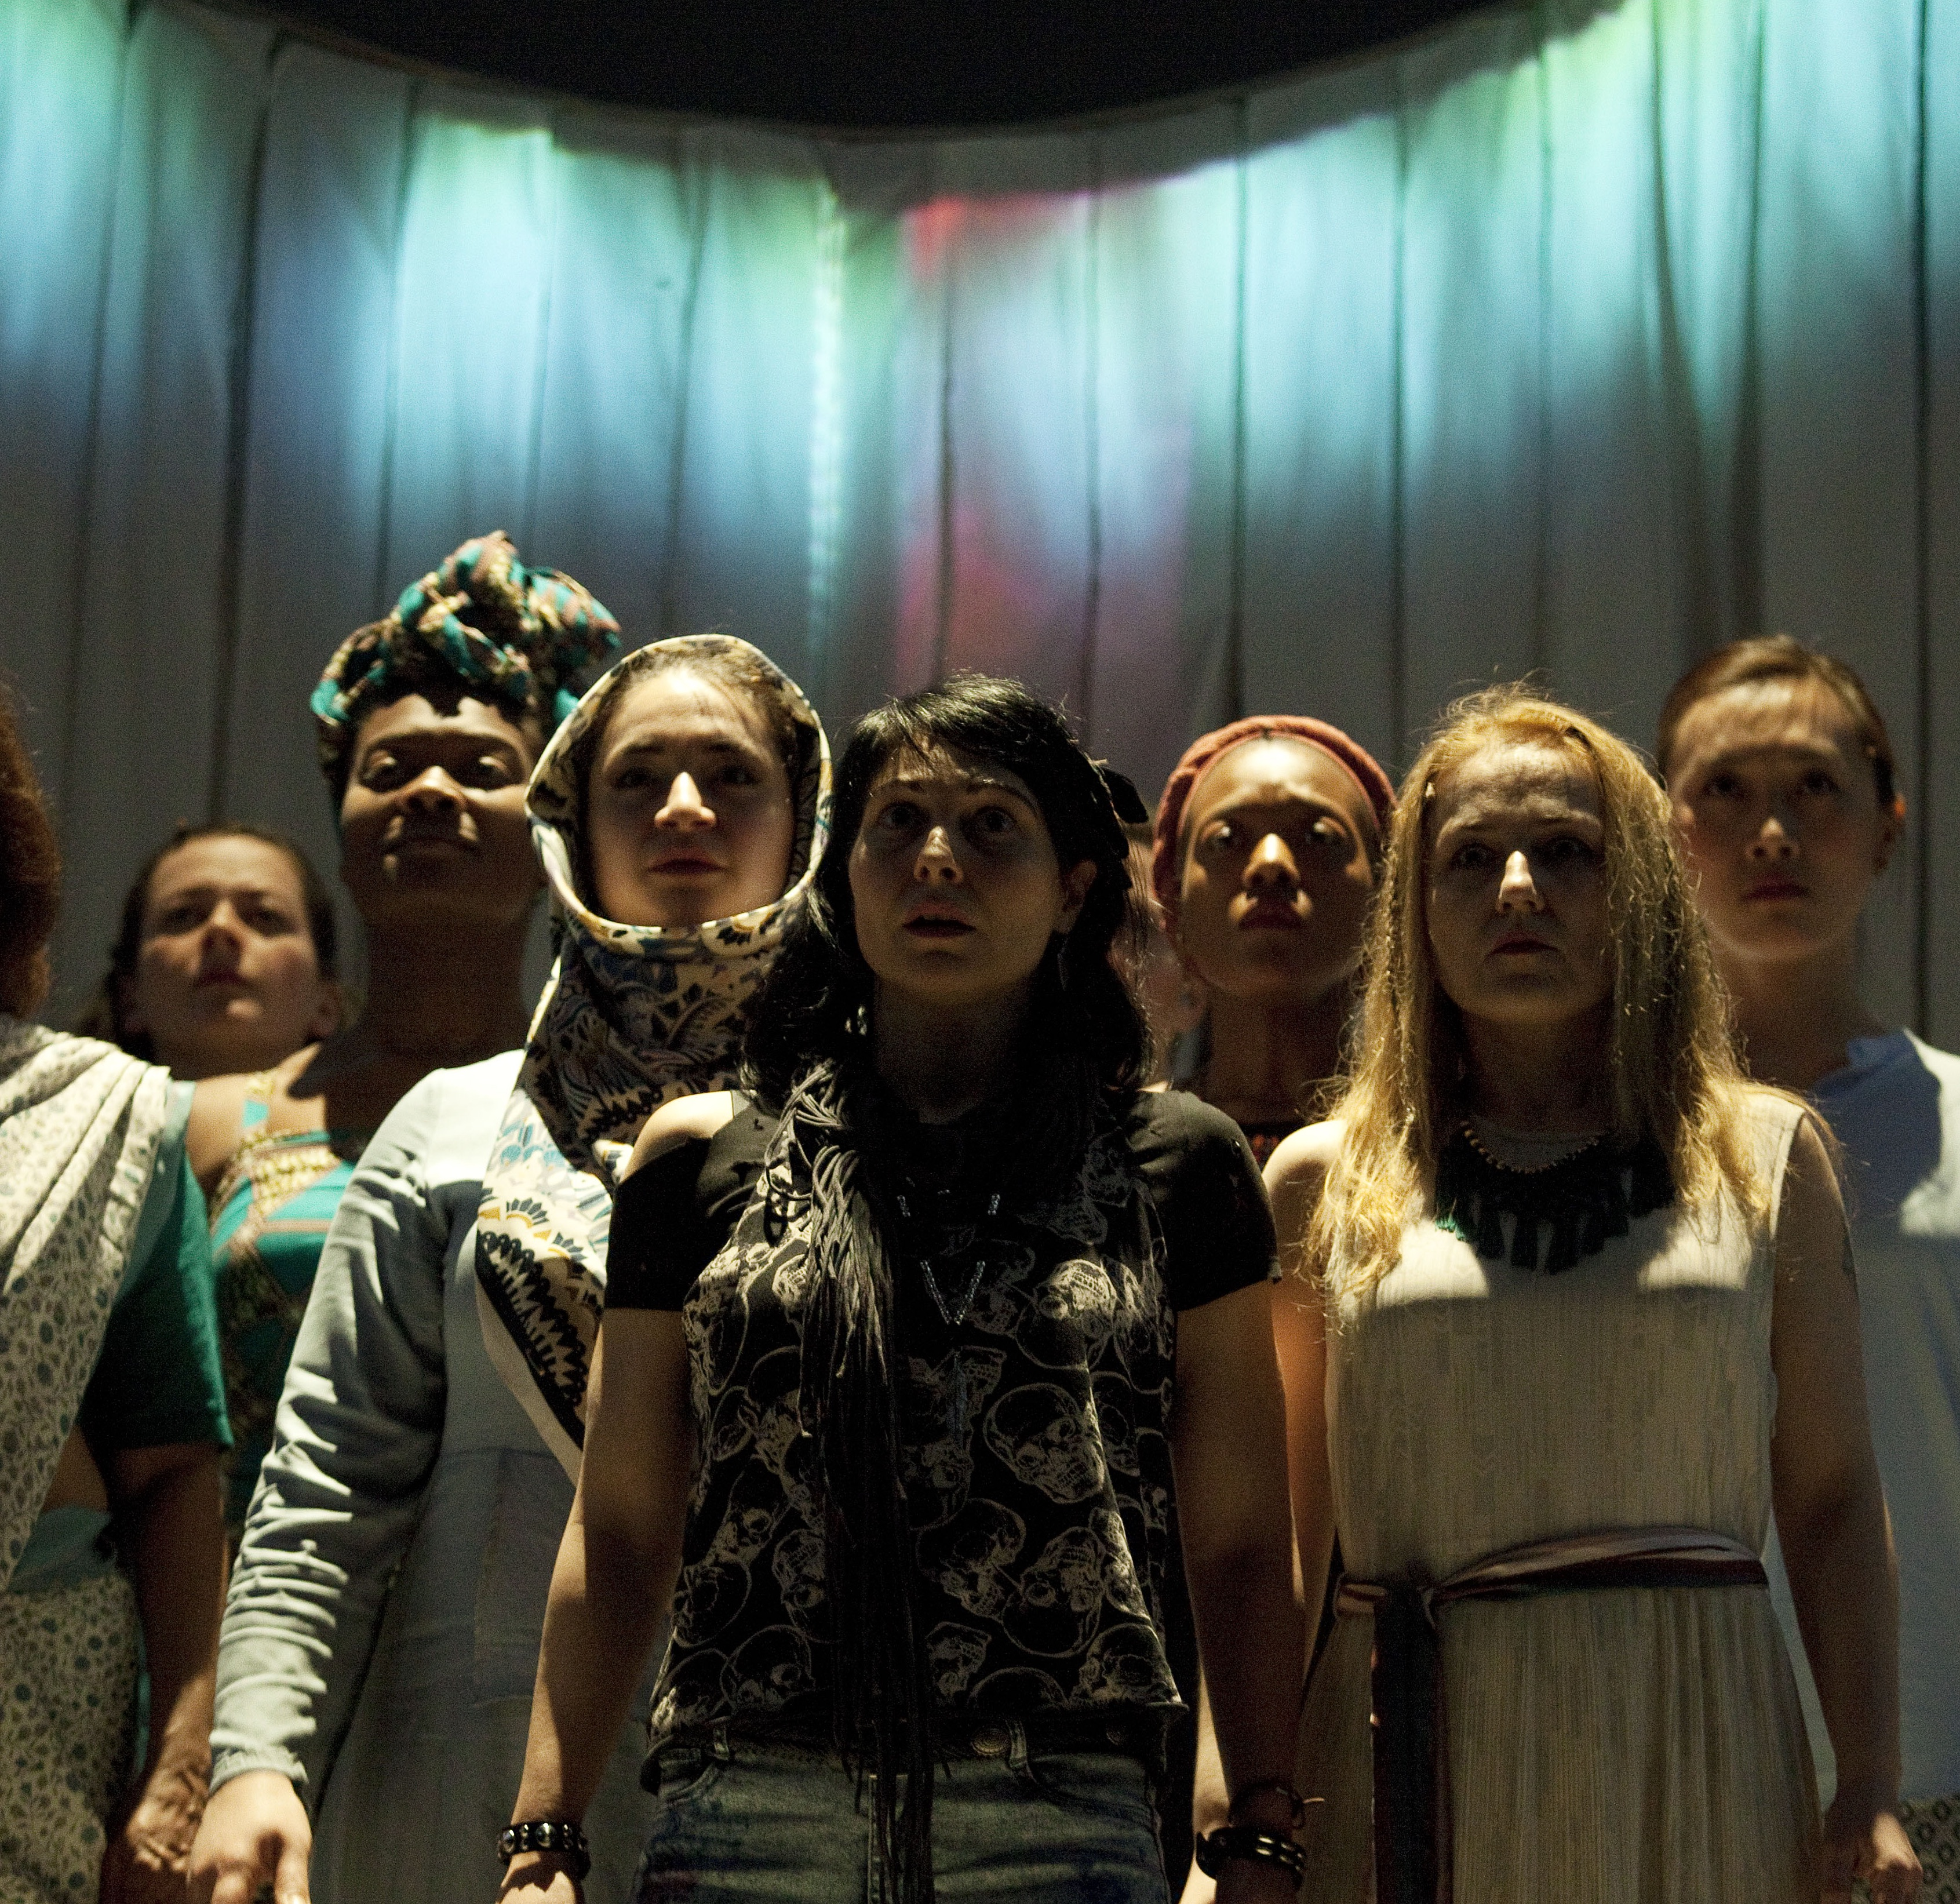 Women create opera - discussion and concert at Poznan Grand Theater